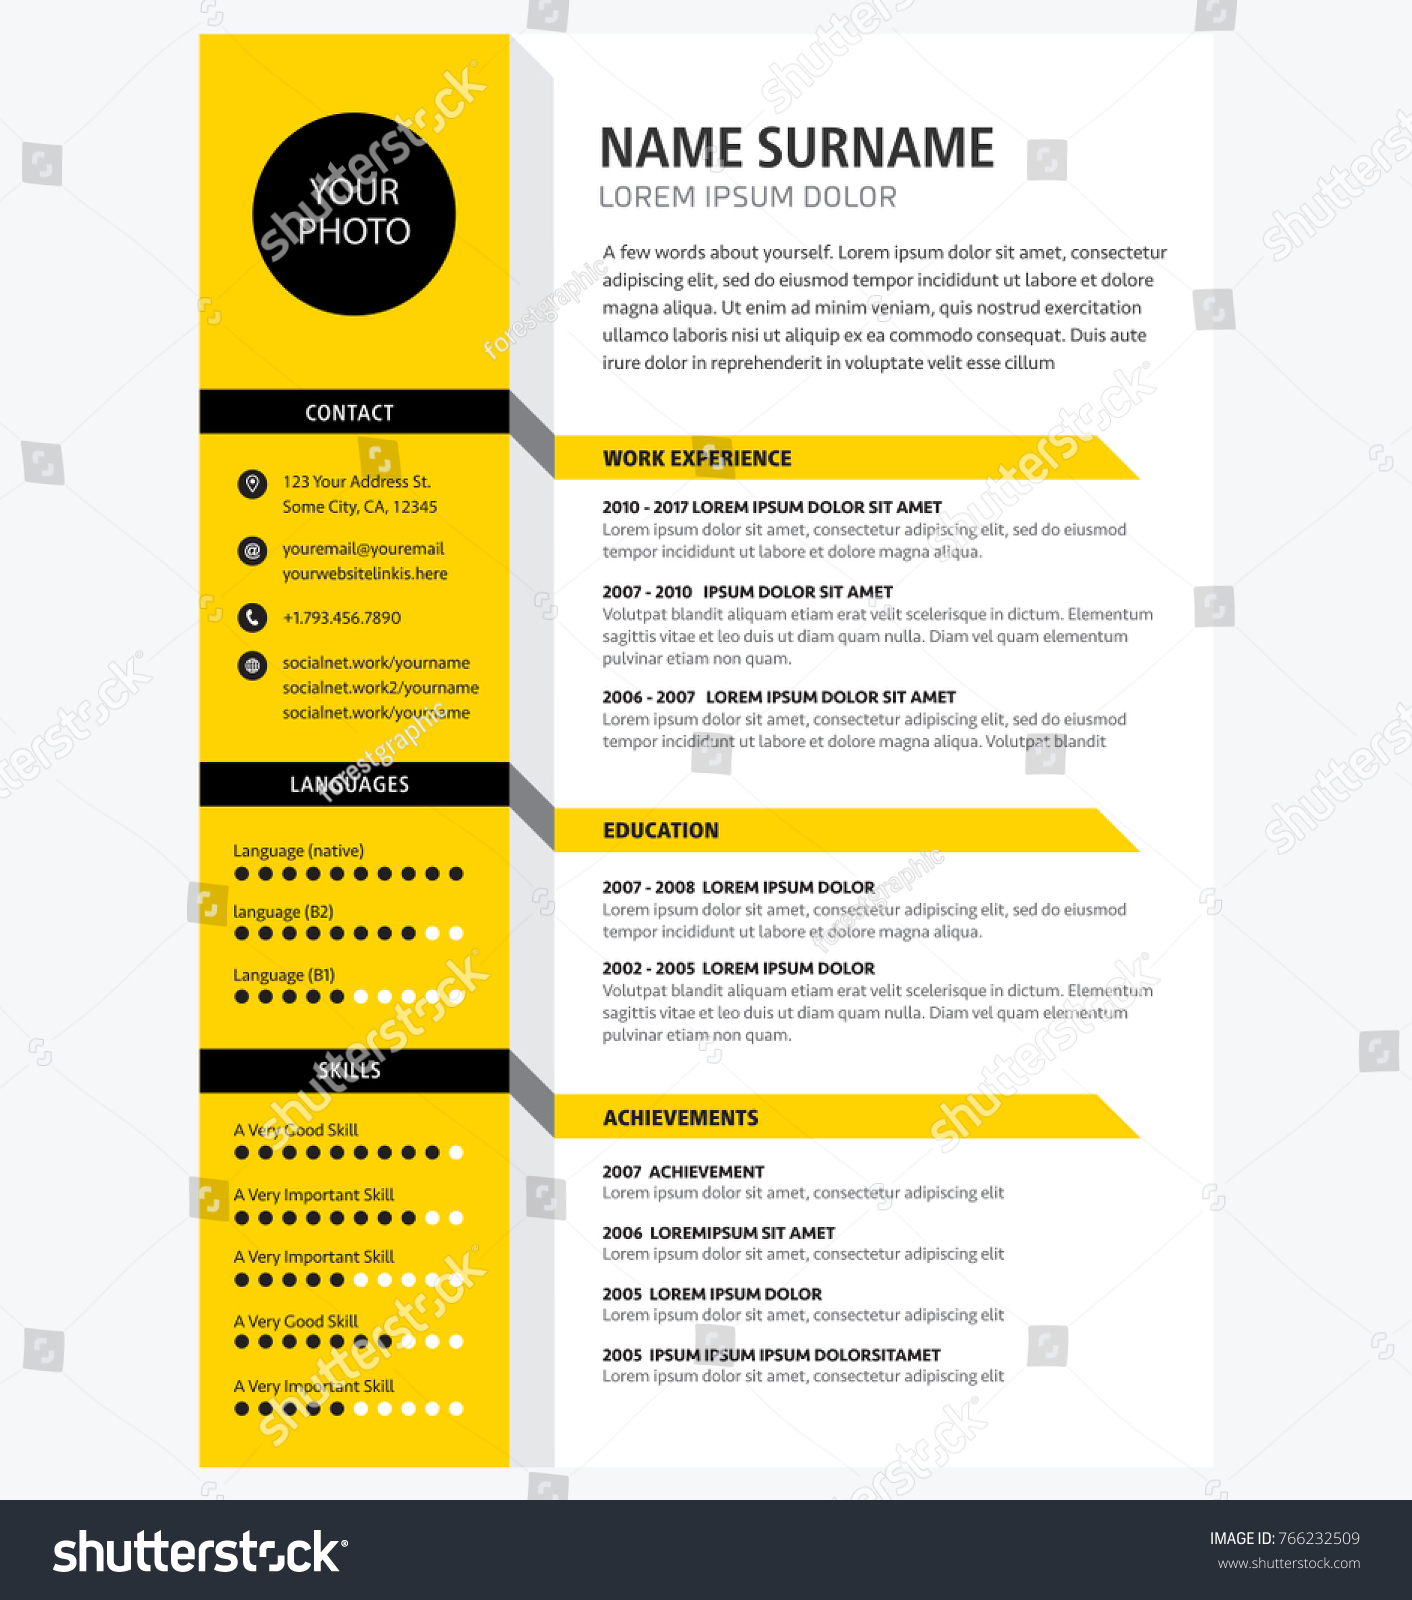 creative cv resume template yellow color のベクター画像素材